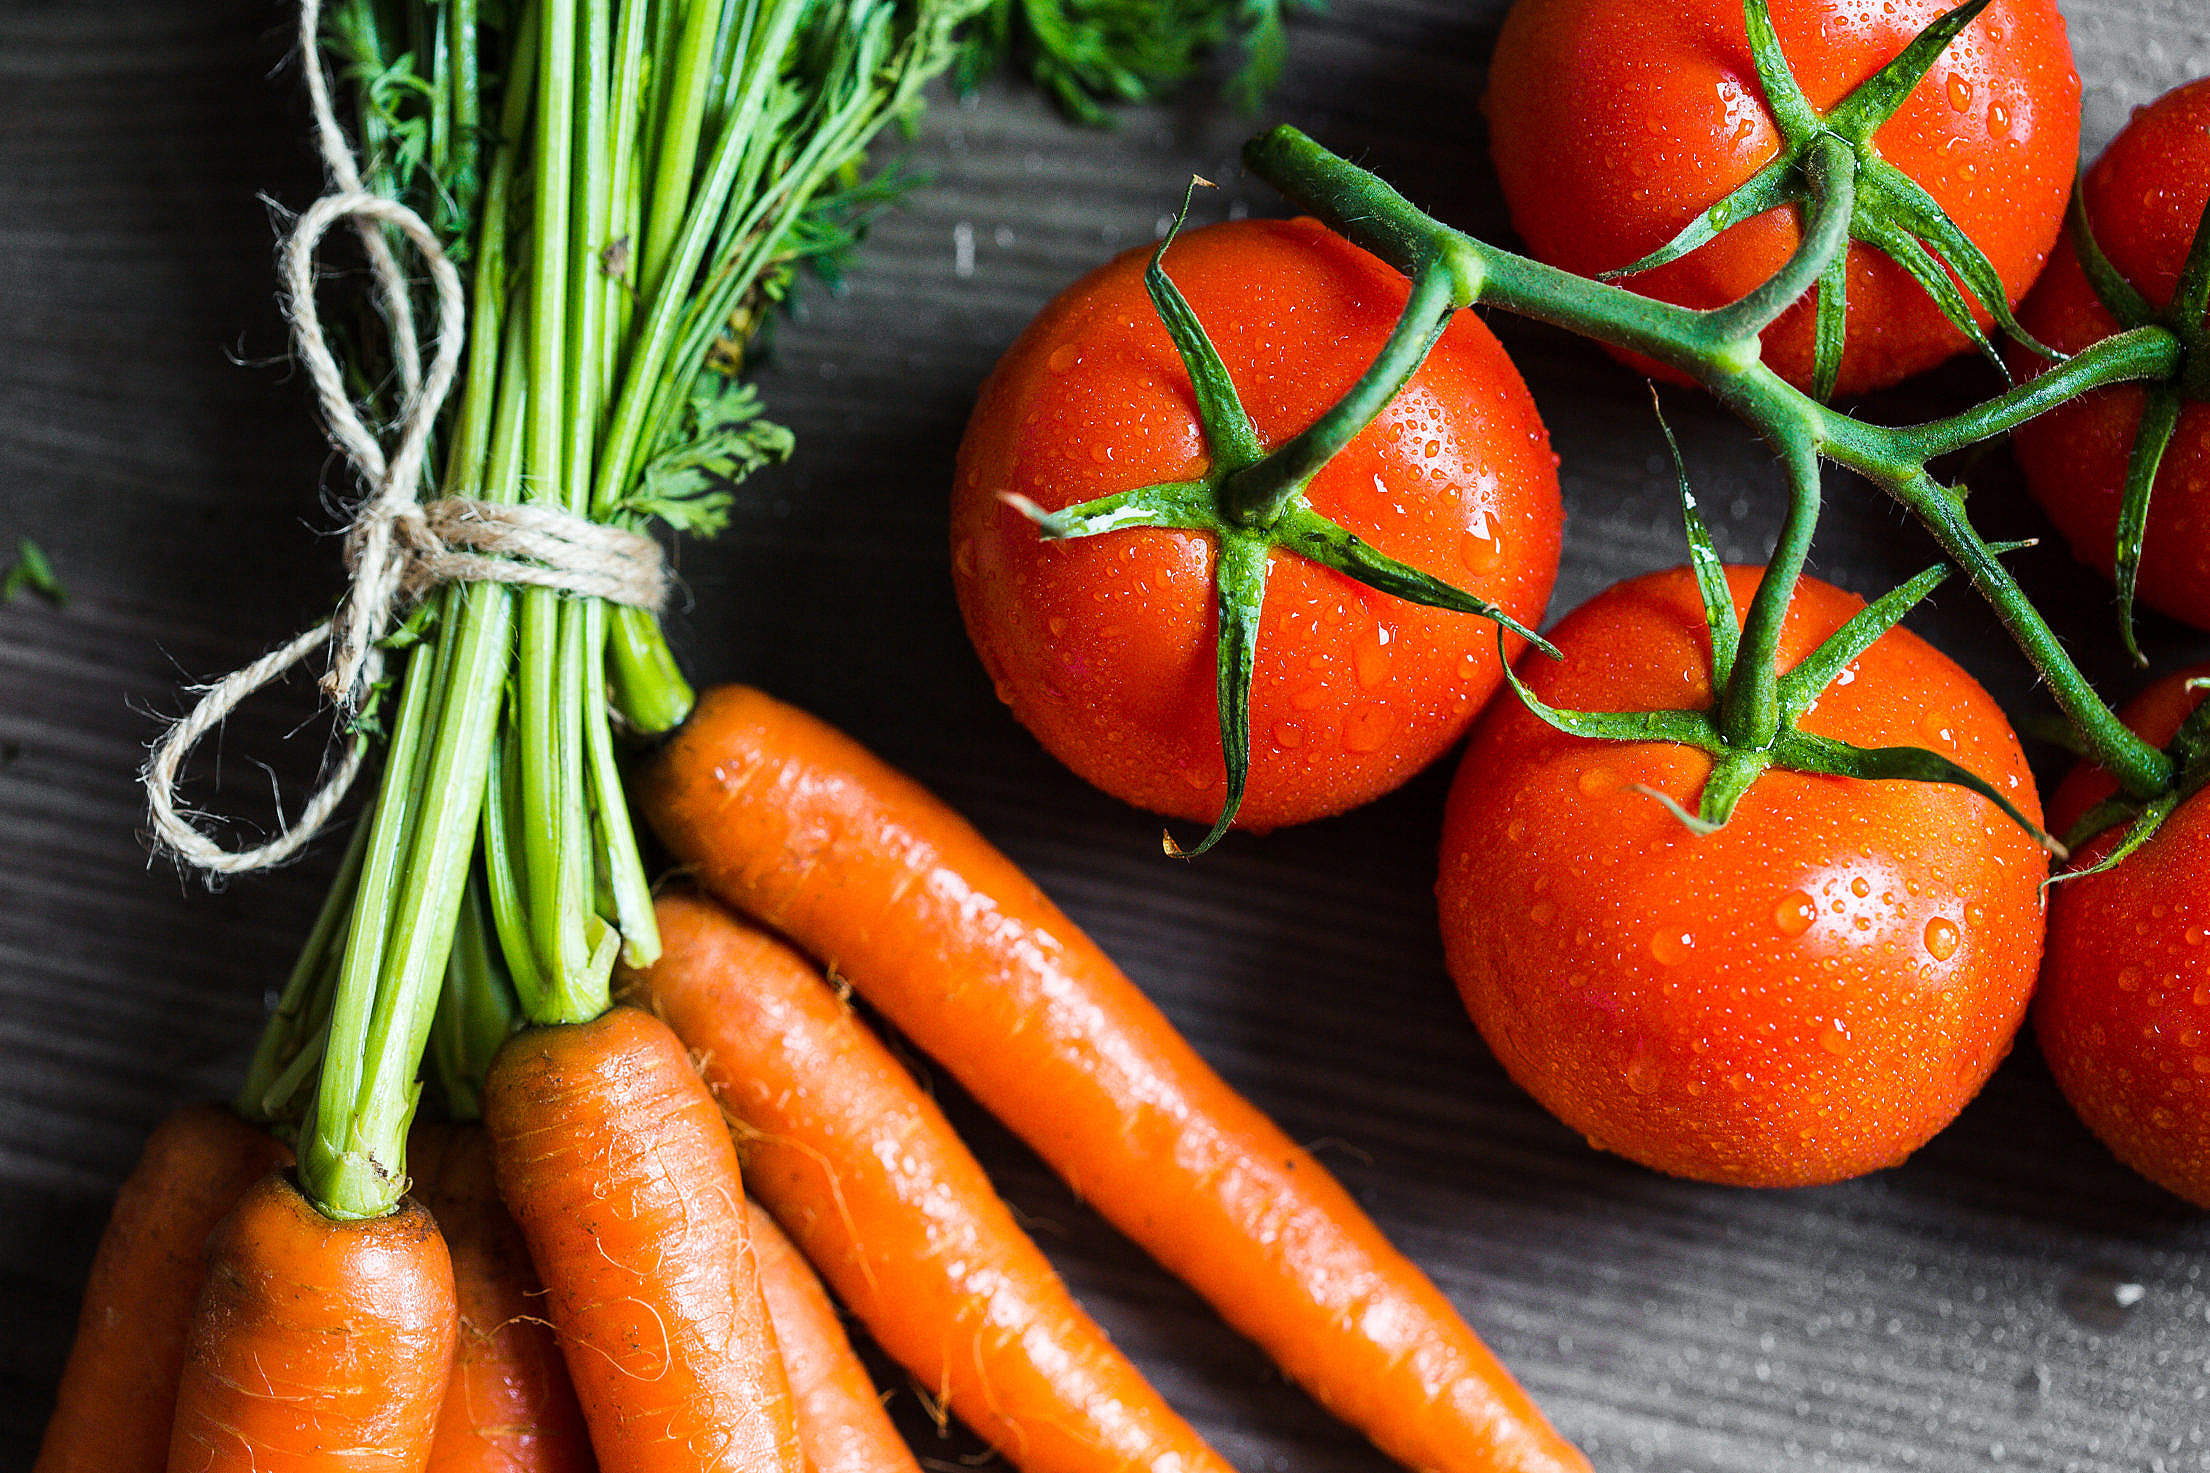 Tomatoes and Carrots Free Stock Photo